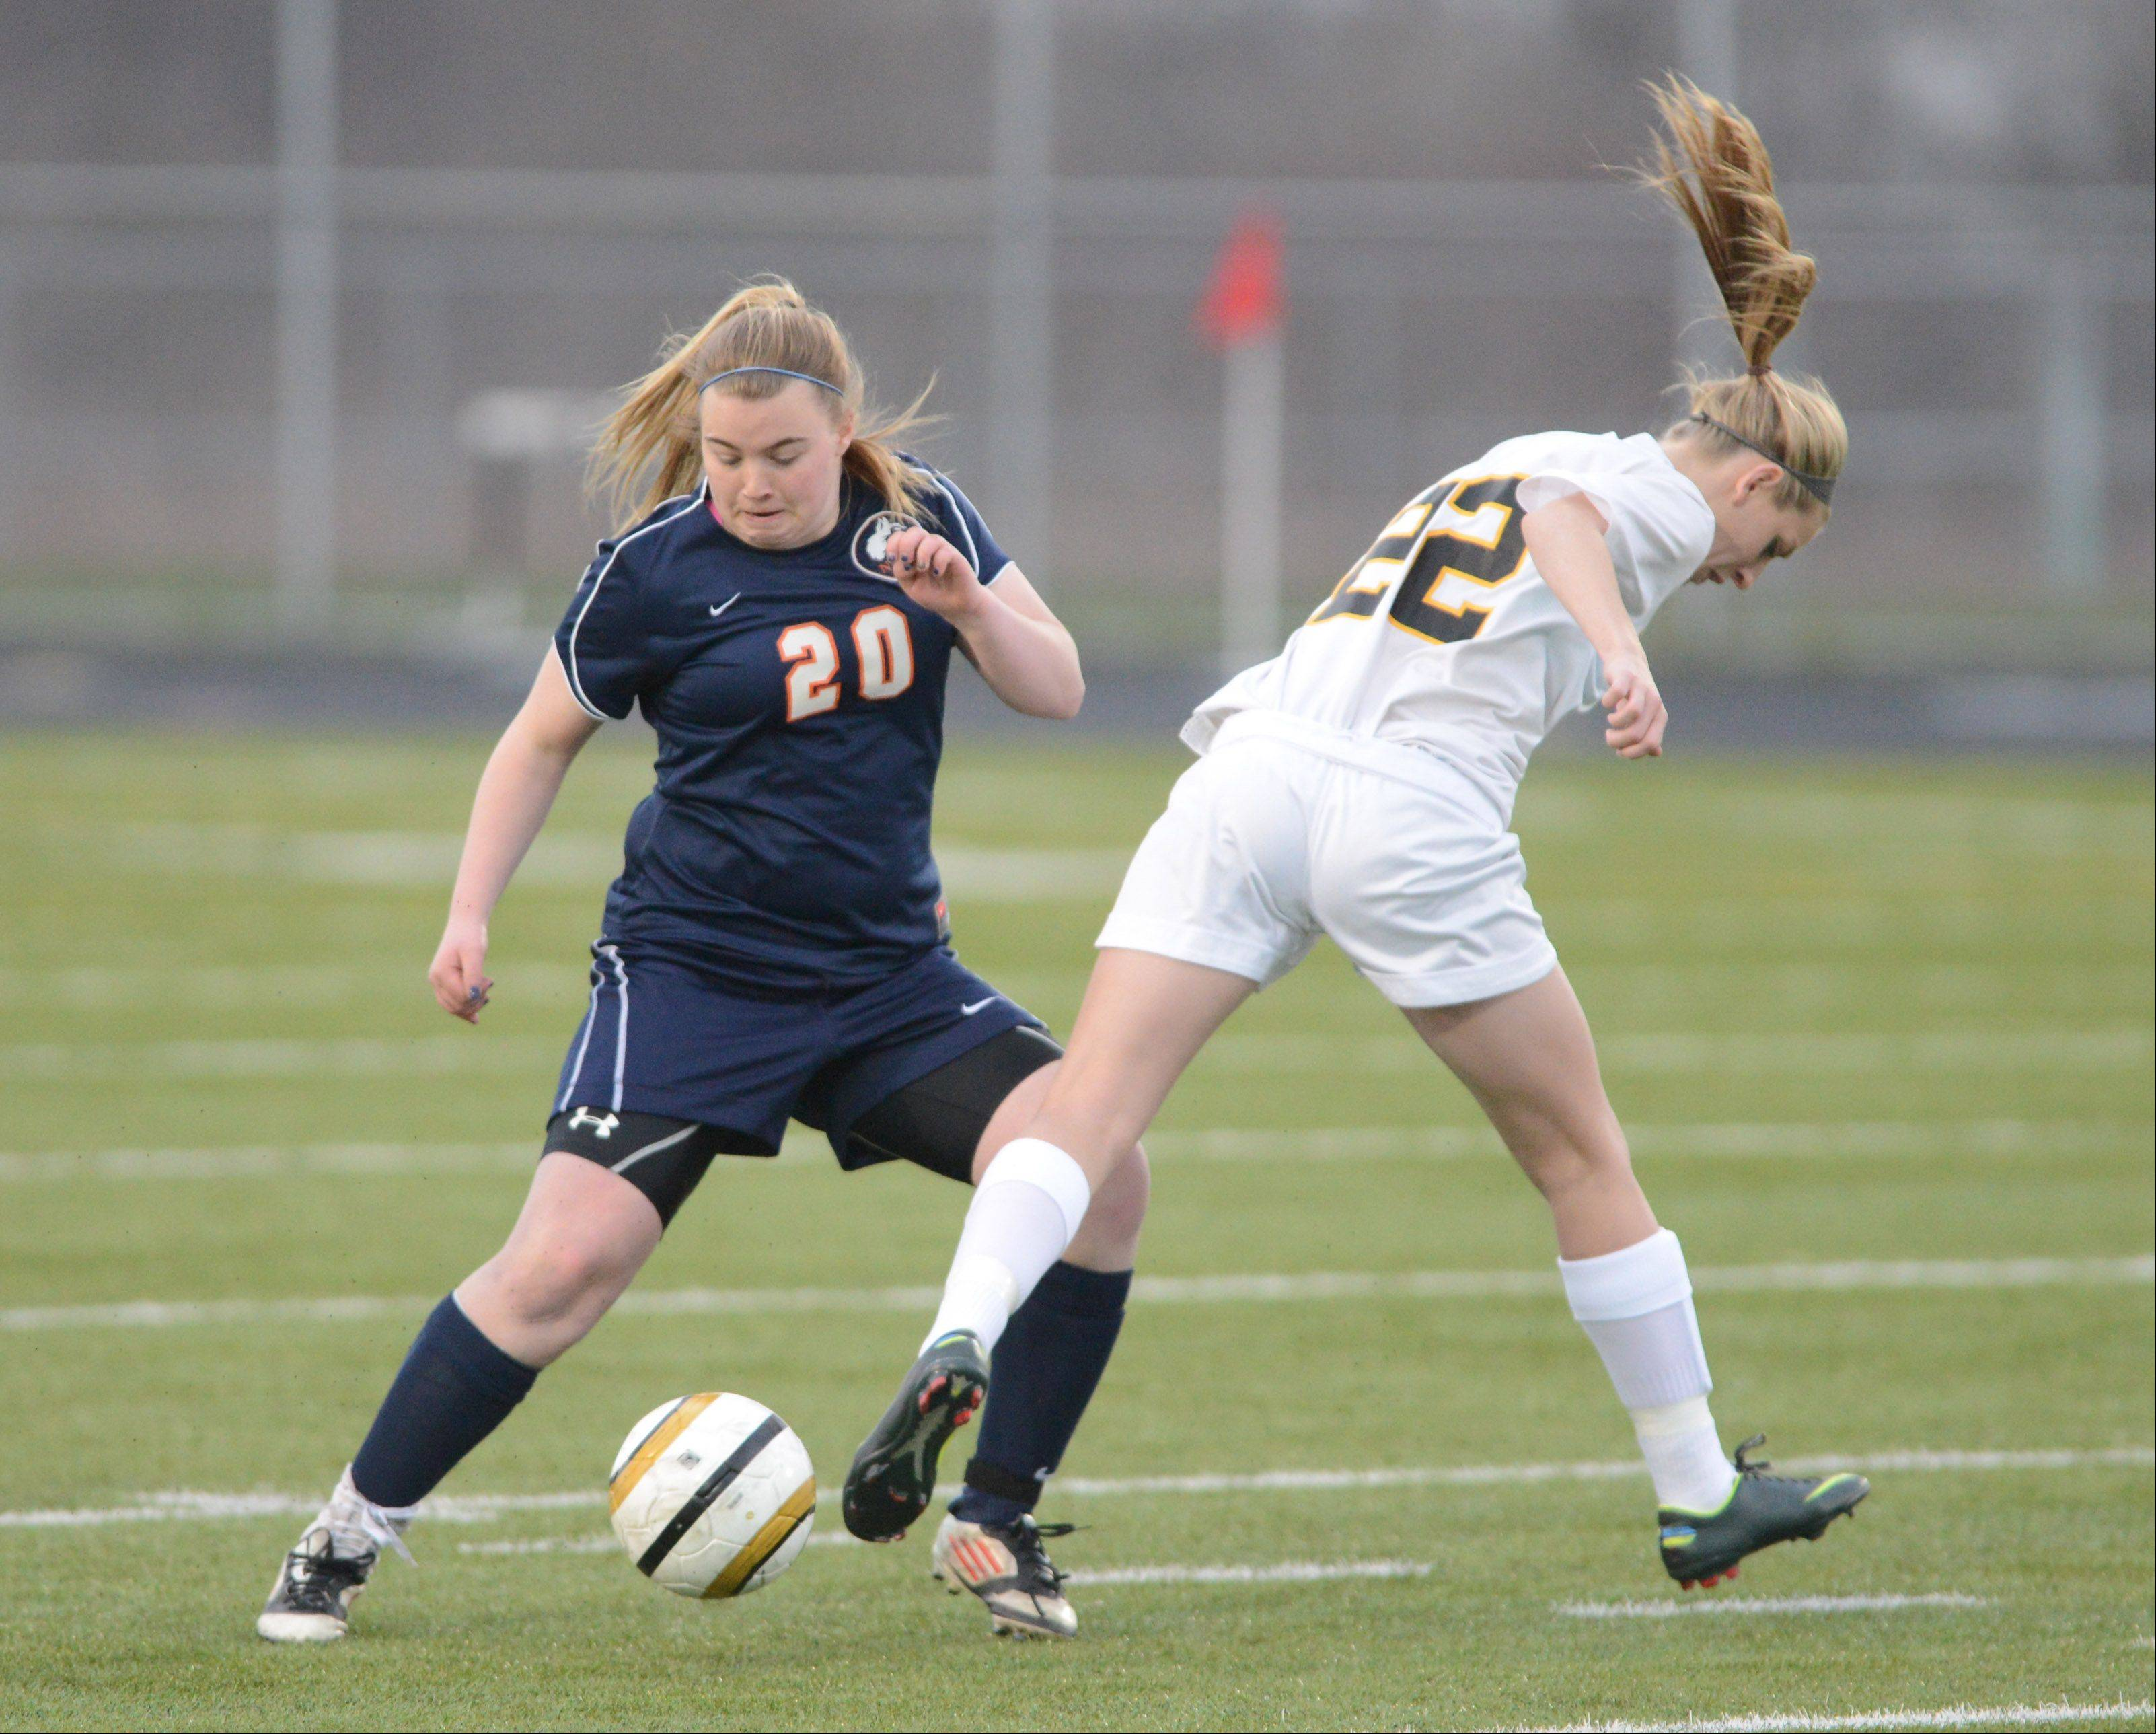 Emily Bromagen of Naperville North and Jenna Kentgen of Metea Valley took part in the Naperville North at Metea Valley girls soccer game Tuesday.